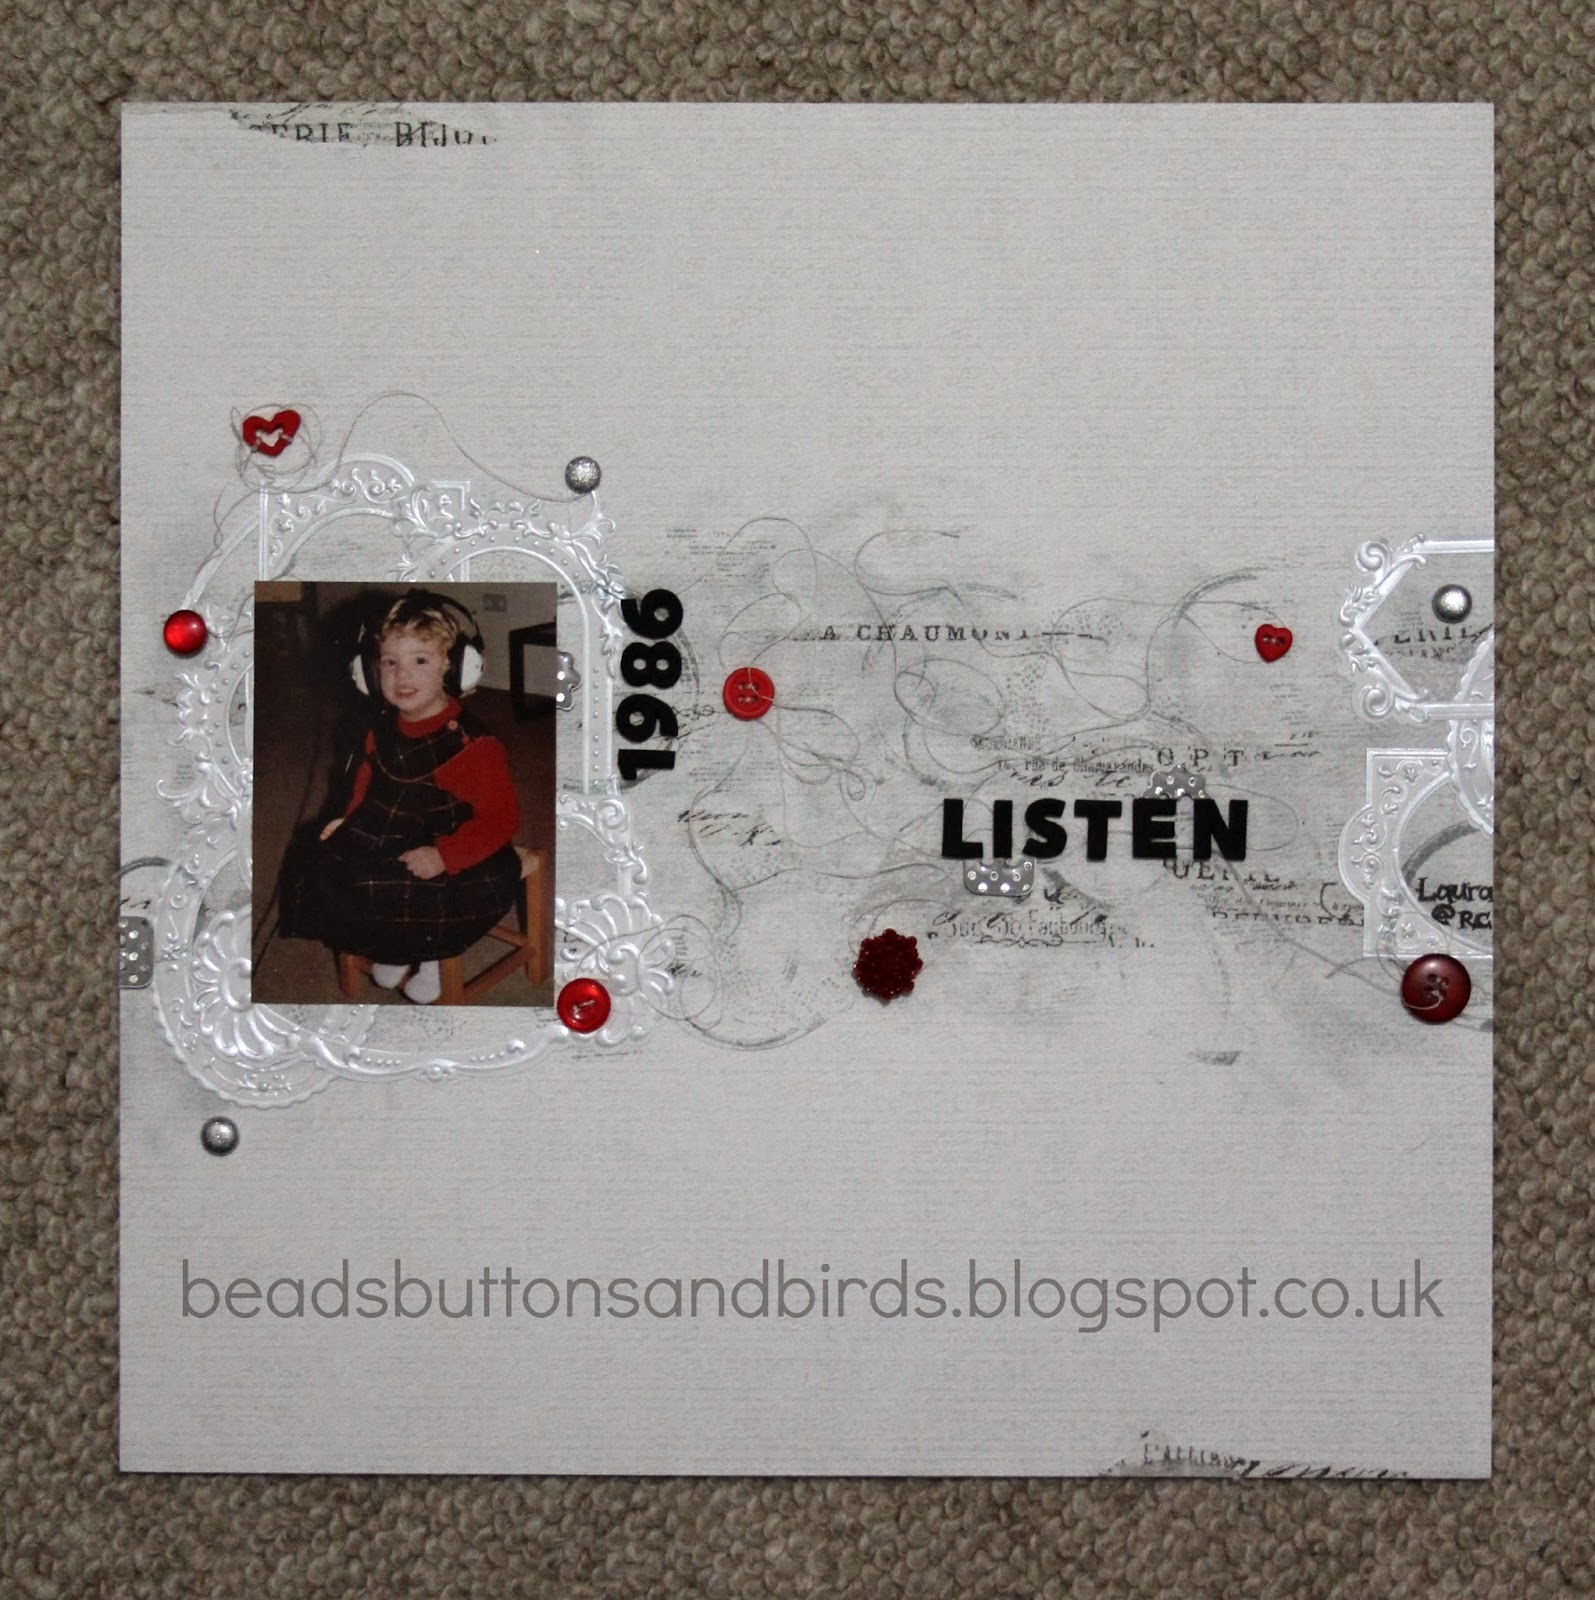 http://beadsbuttonsandbirds.blogspot.co.uk/2014/01/listen.html